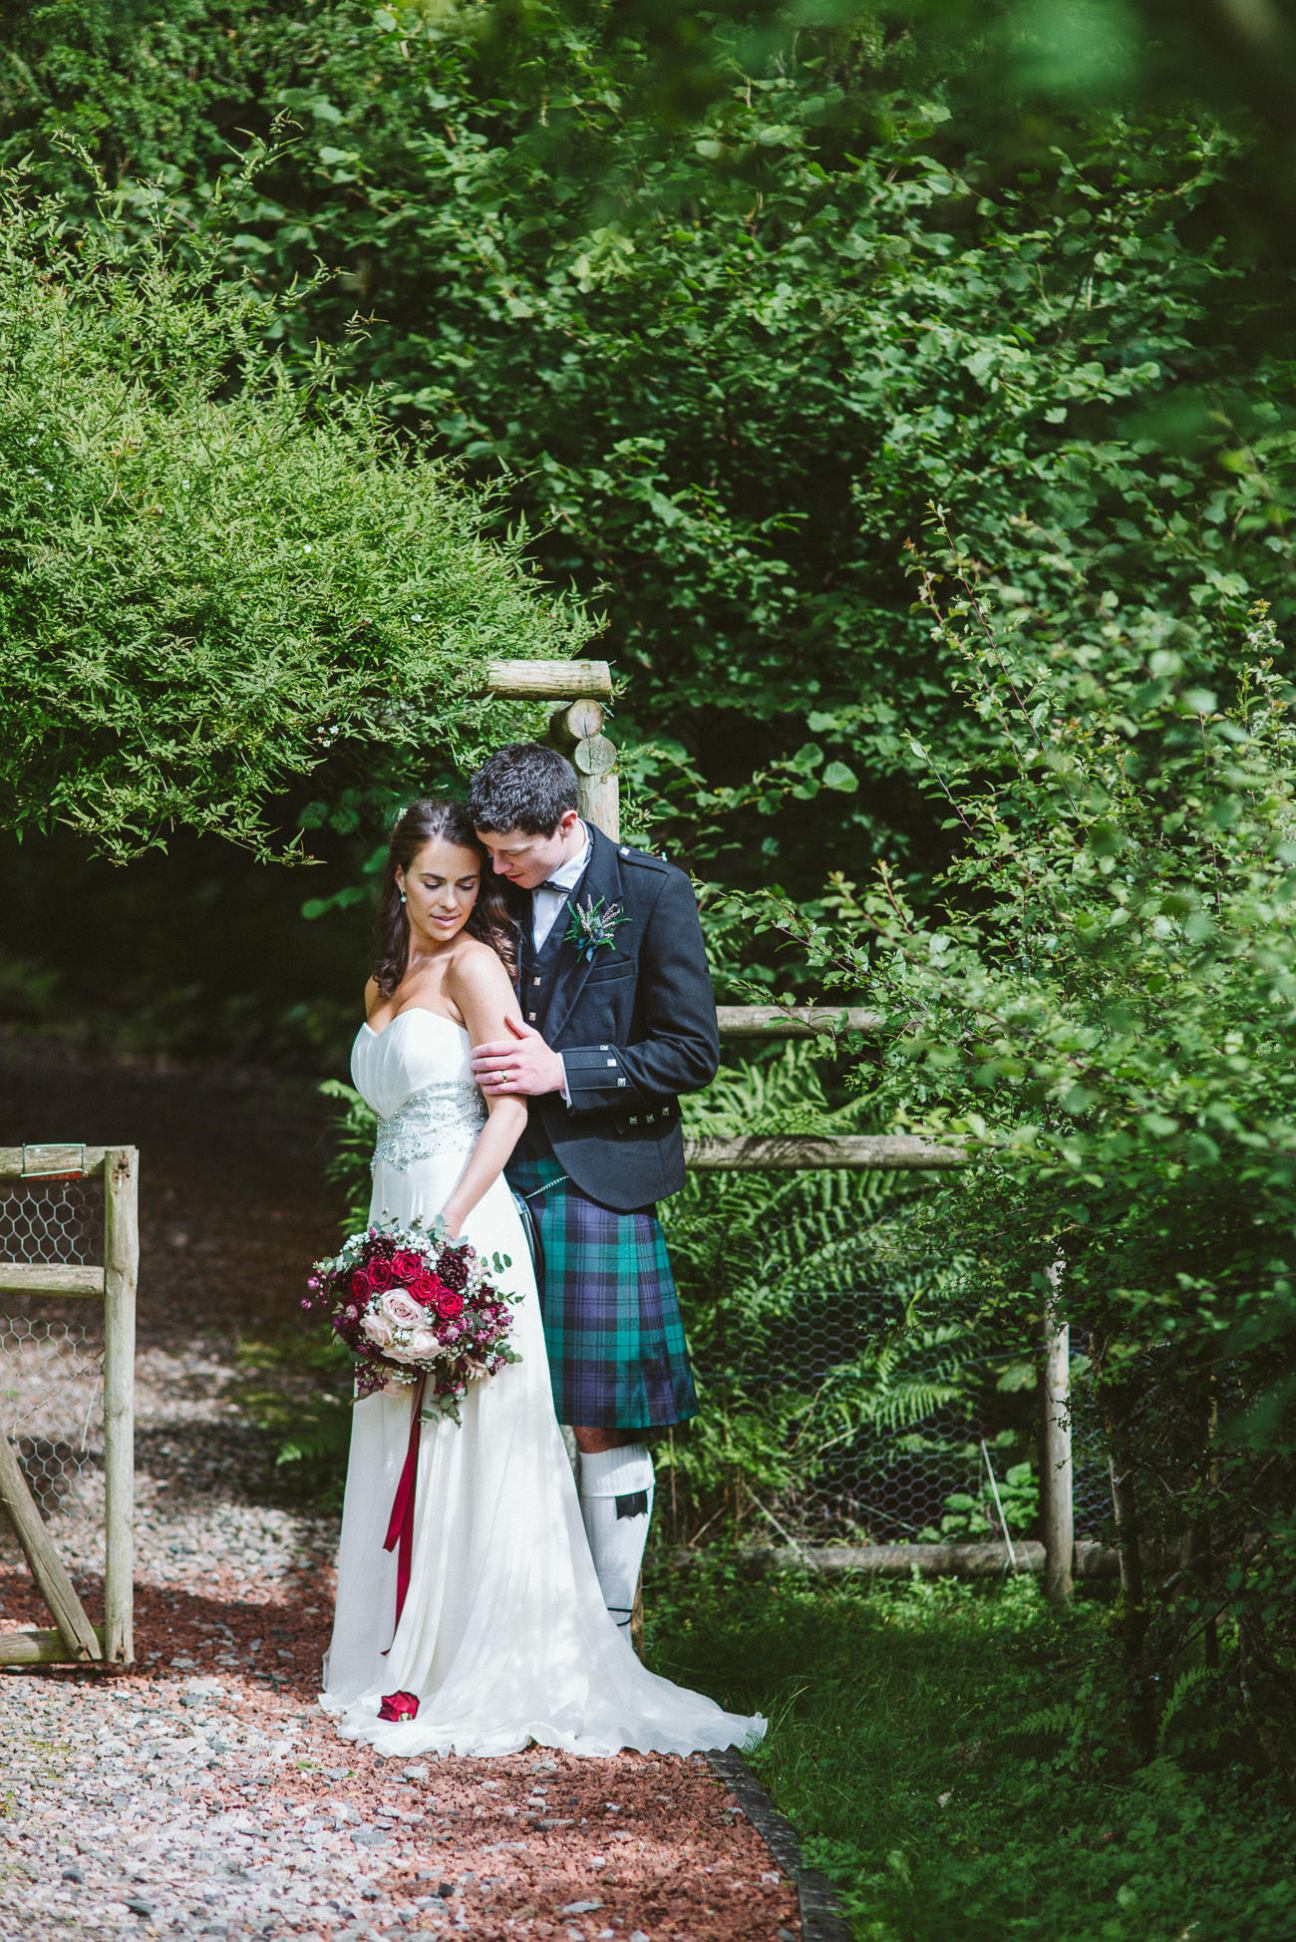 drumtochty-castle-highlands-scotland-wedding-385